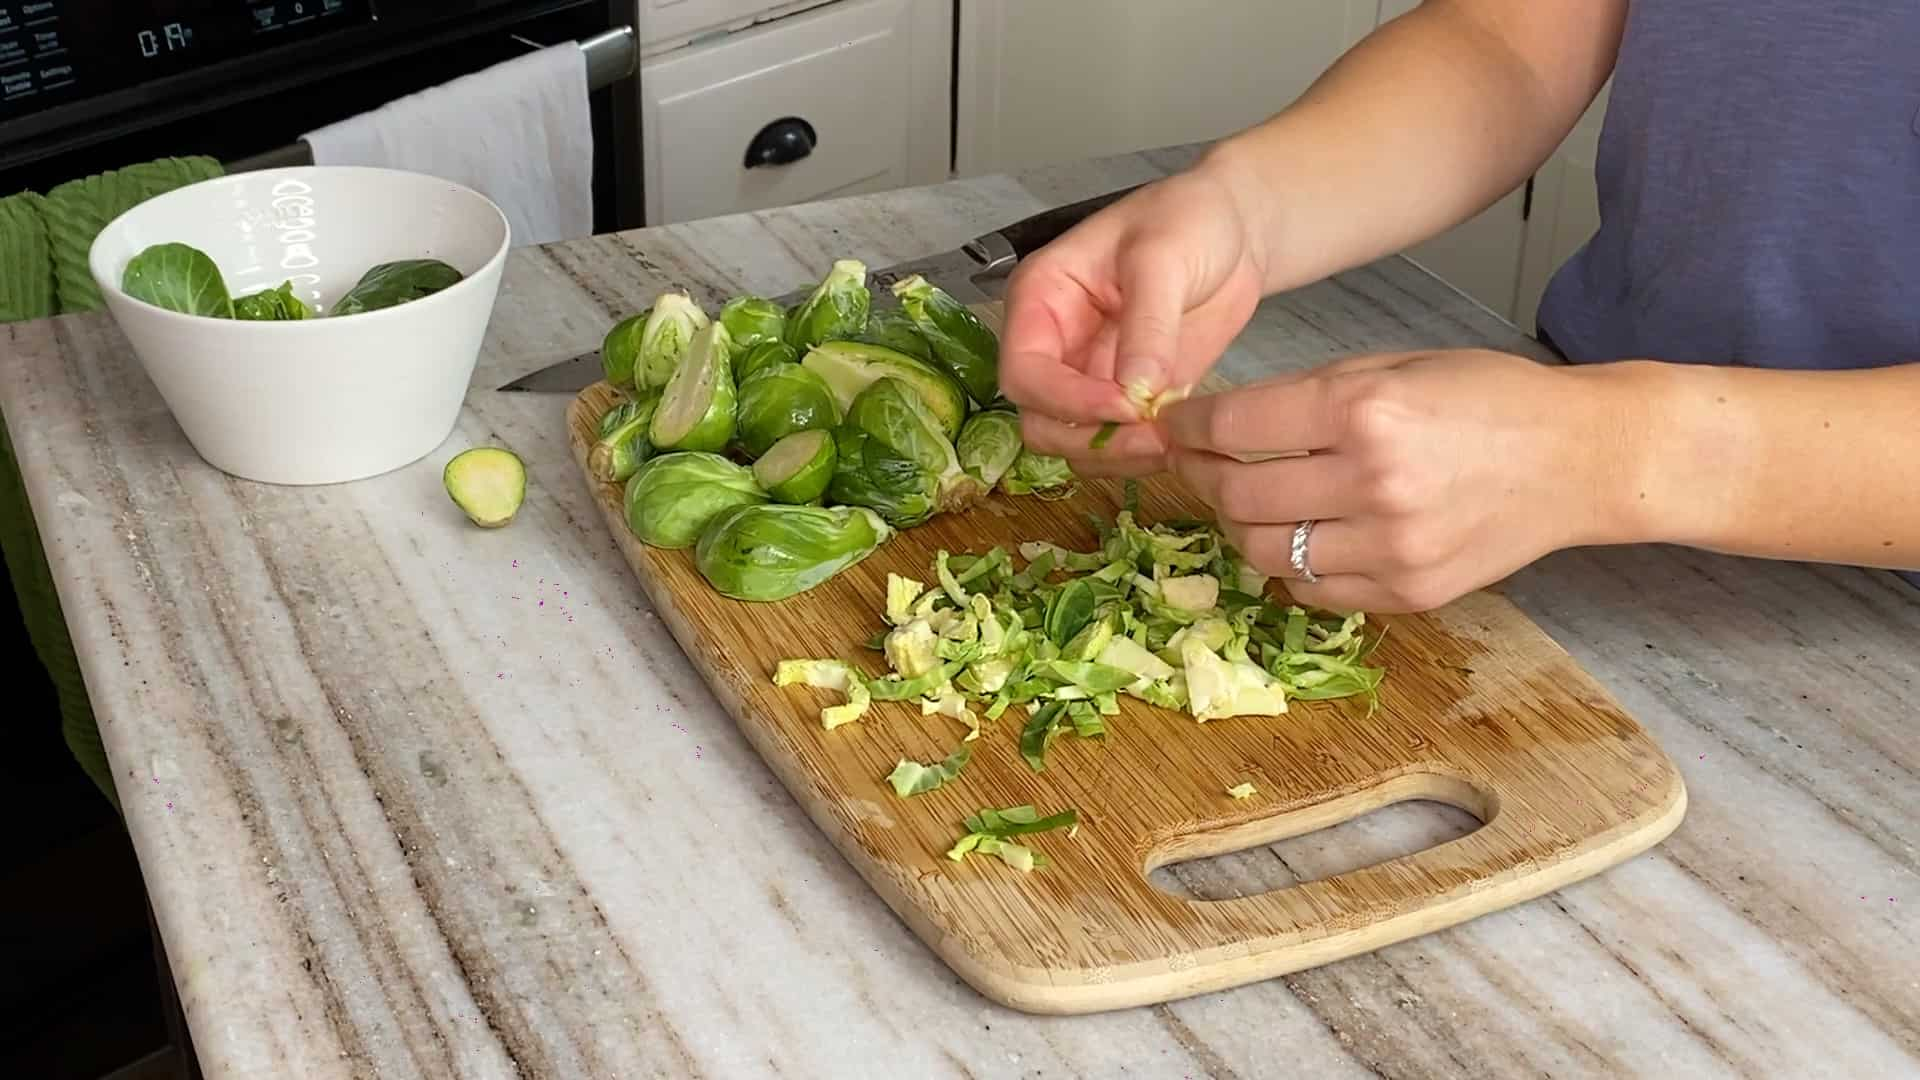 woman peeling apart shredded brussels sprouts with her fingers over a cutting board